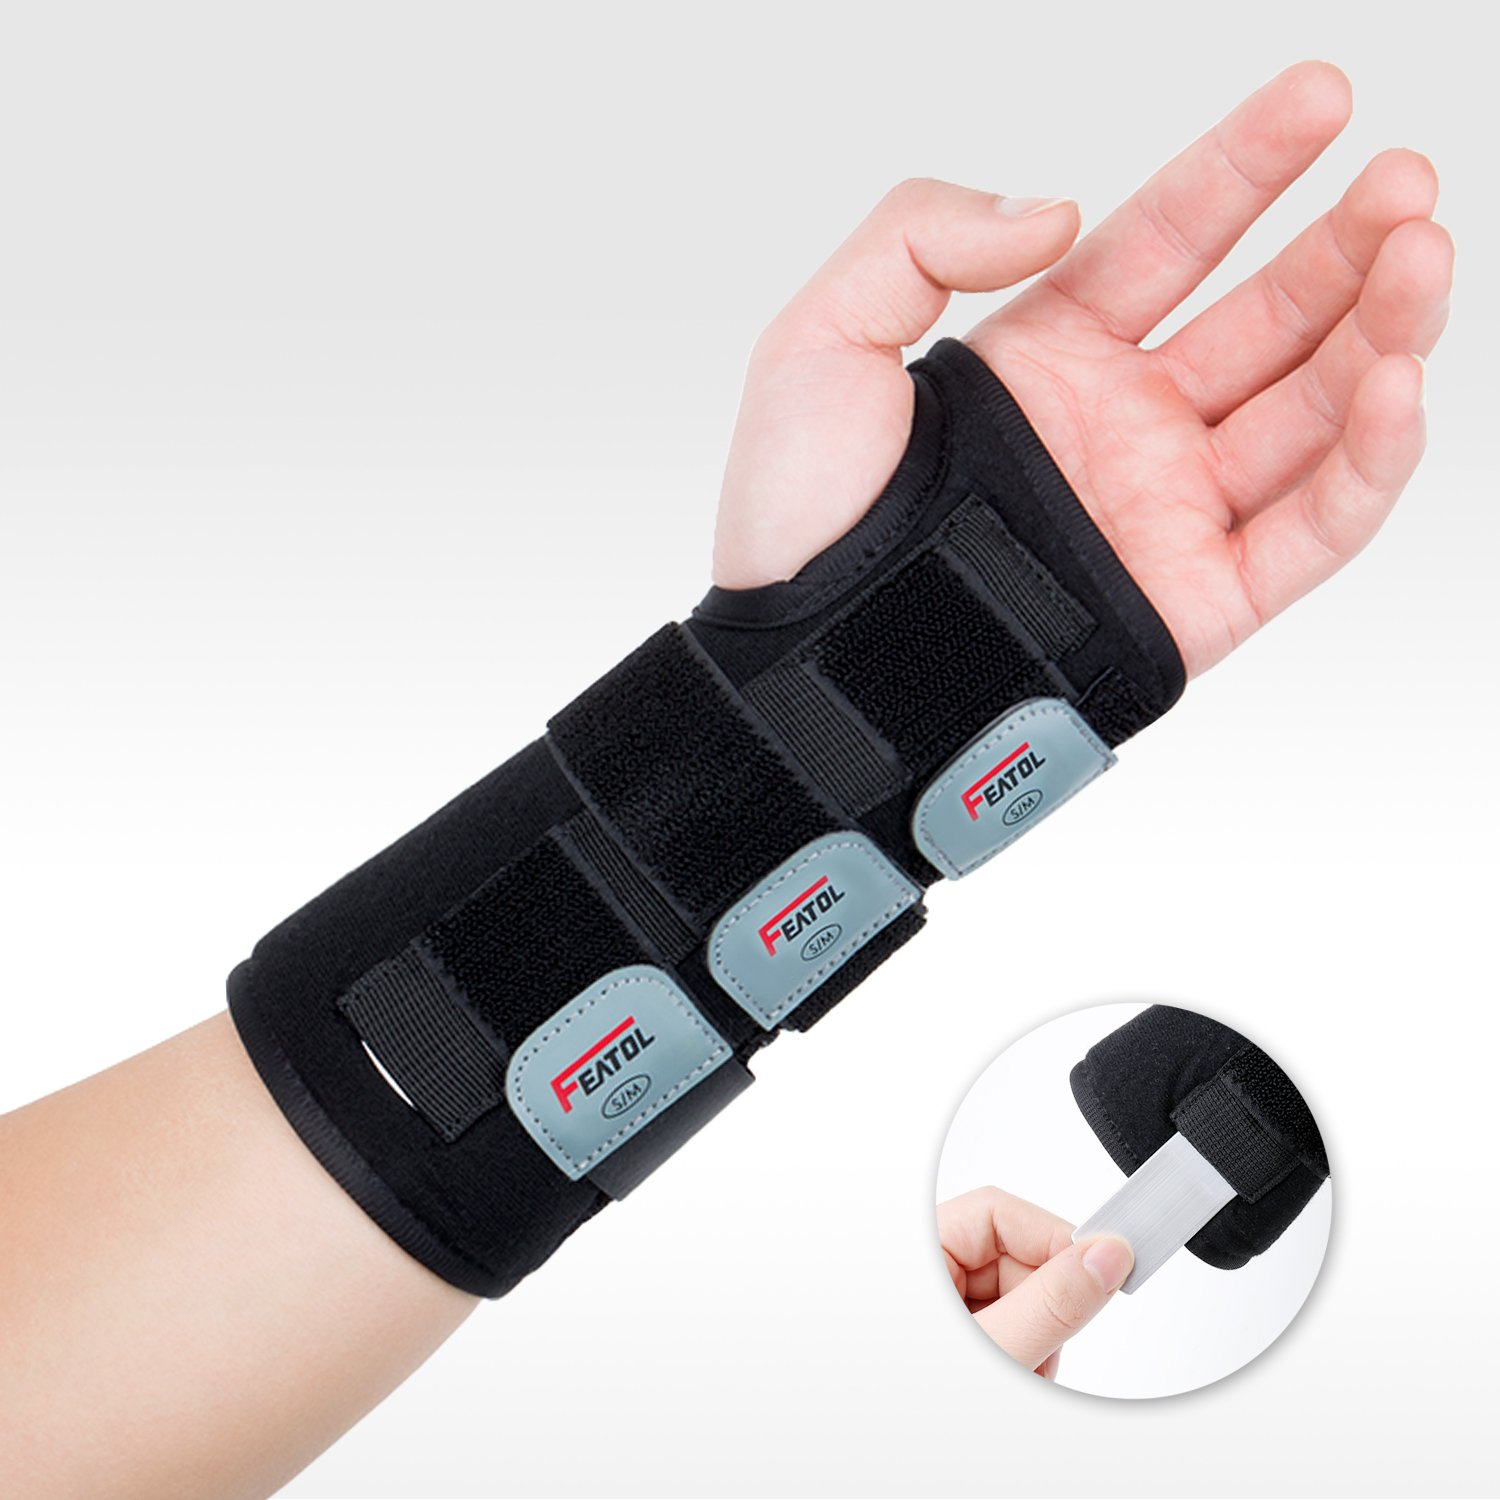 Featol Adjustable Wrist Support Brace with Splints for Carpal Tunnel, Injuries,Wrist Pain, Sprain (M/L, Left)